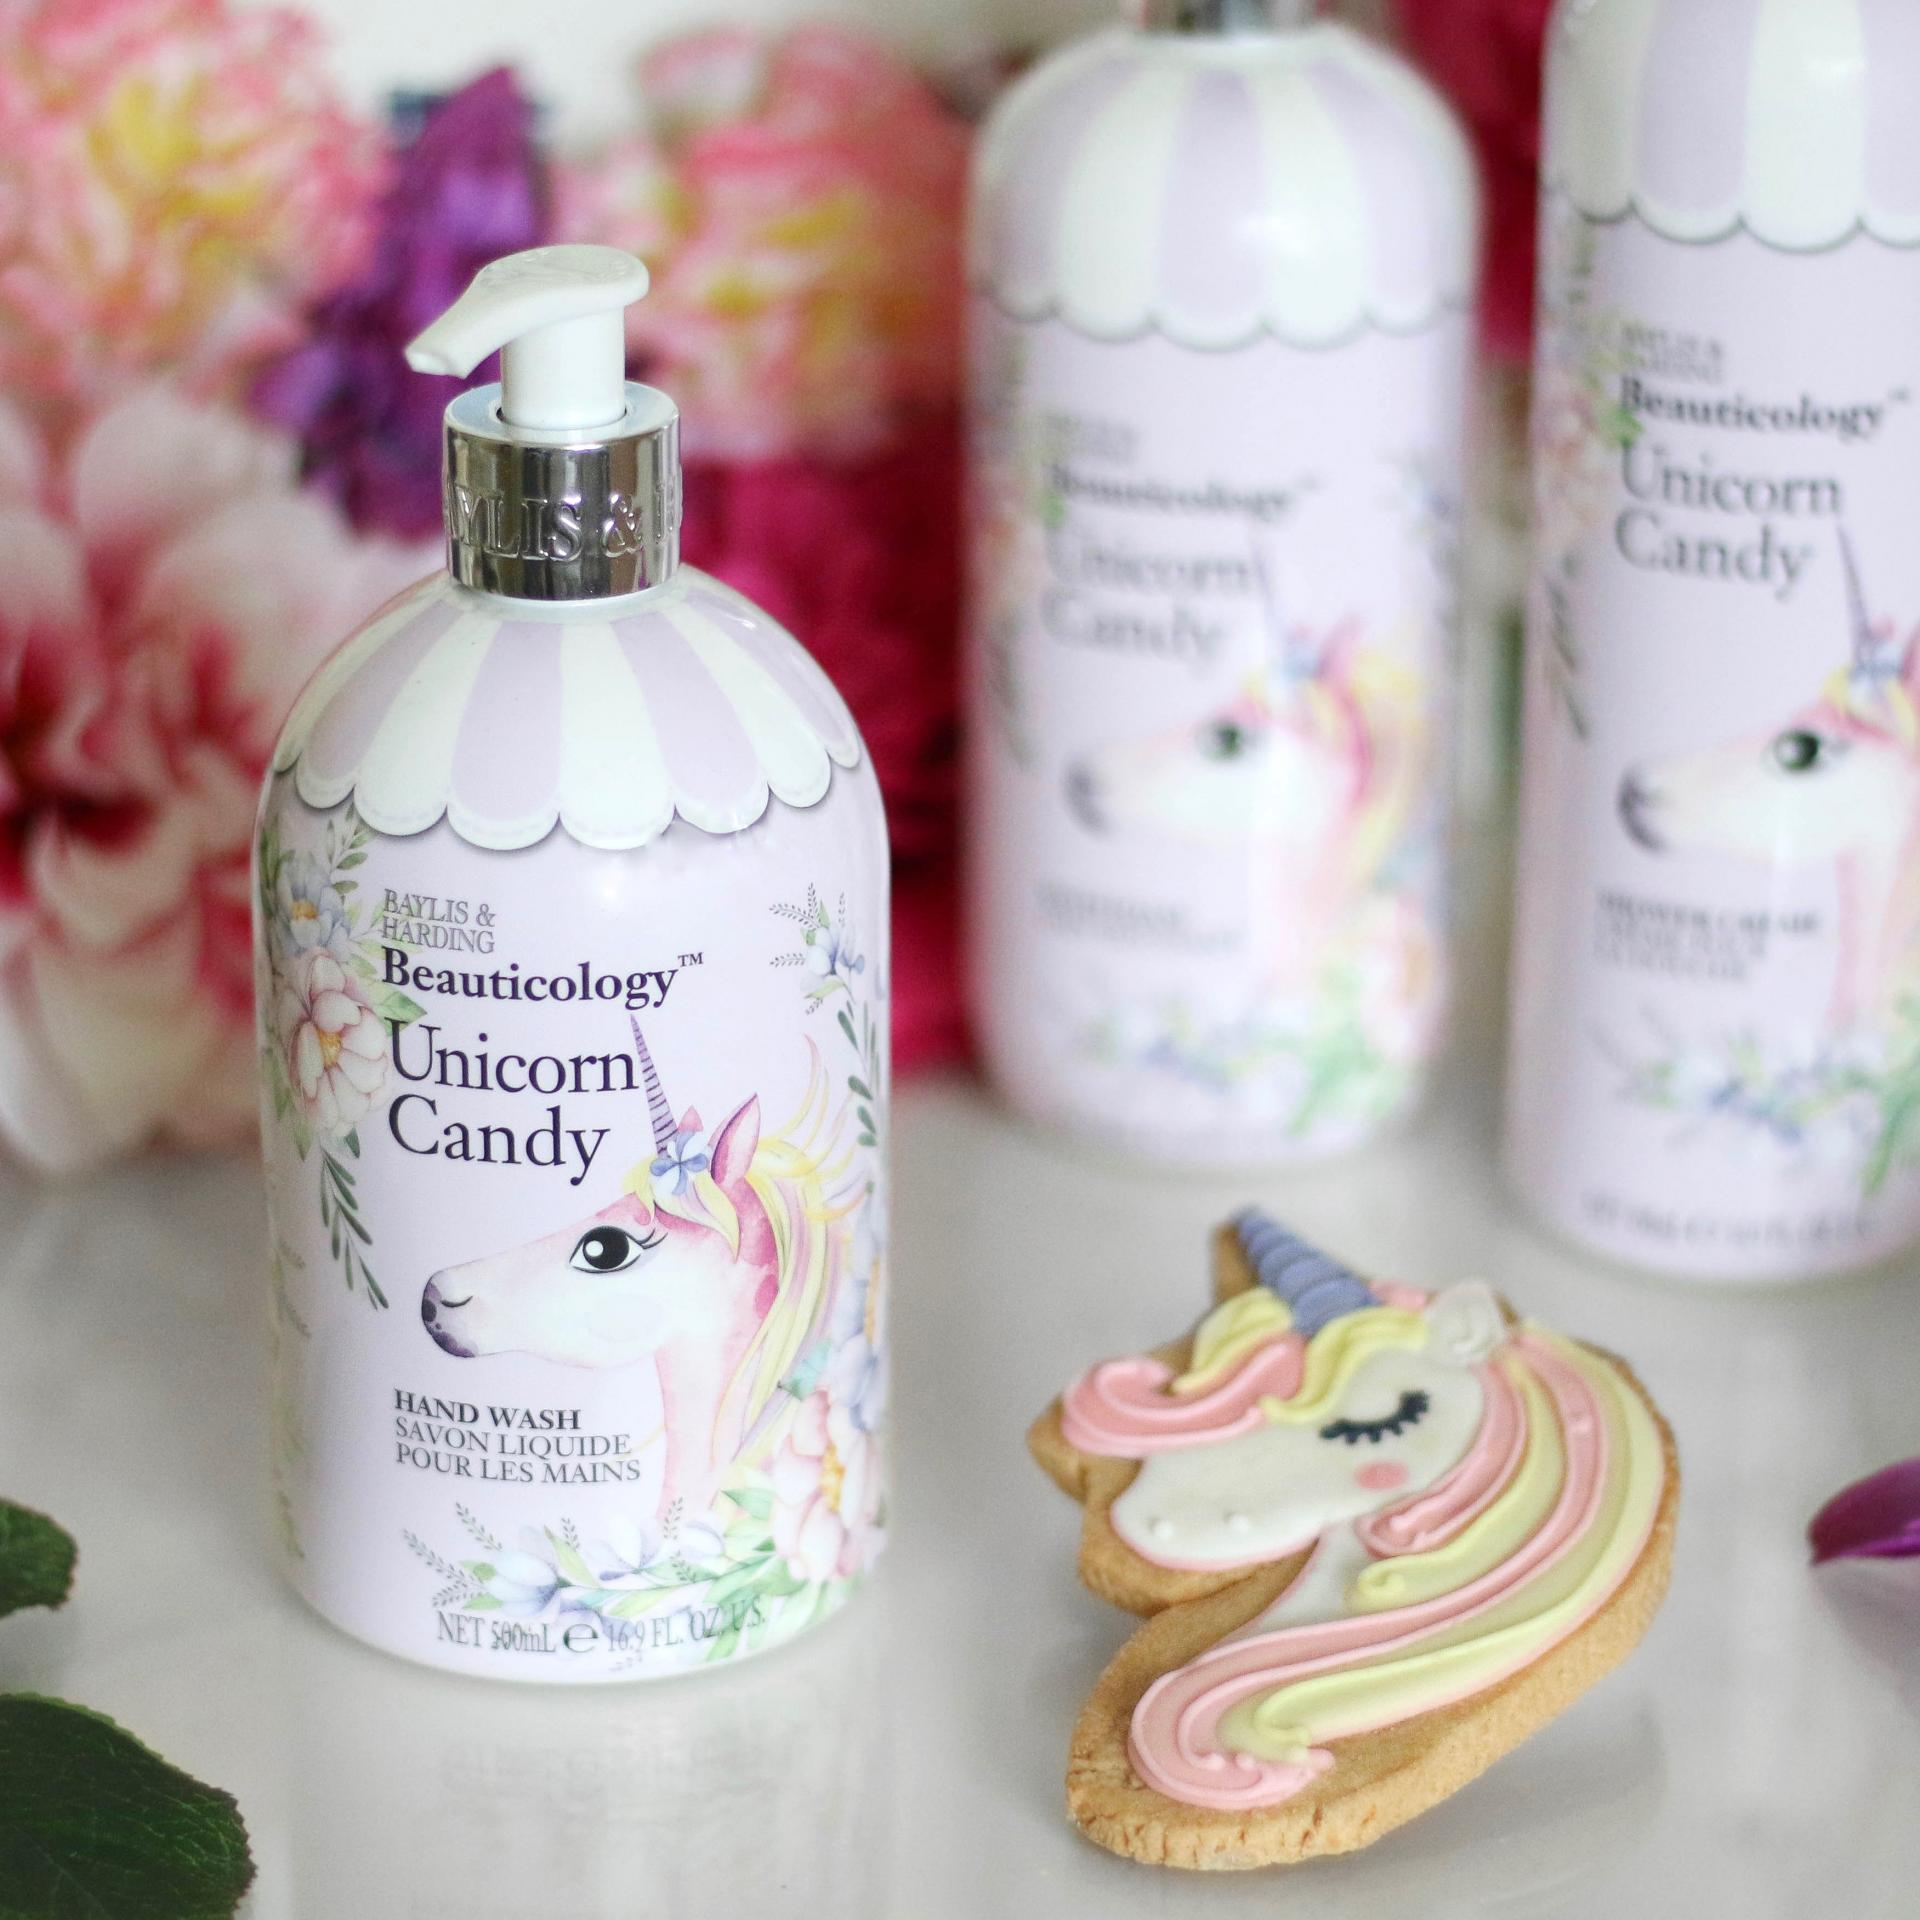 Baylis & Harding Beauticology Unicorn Candy